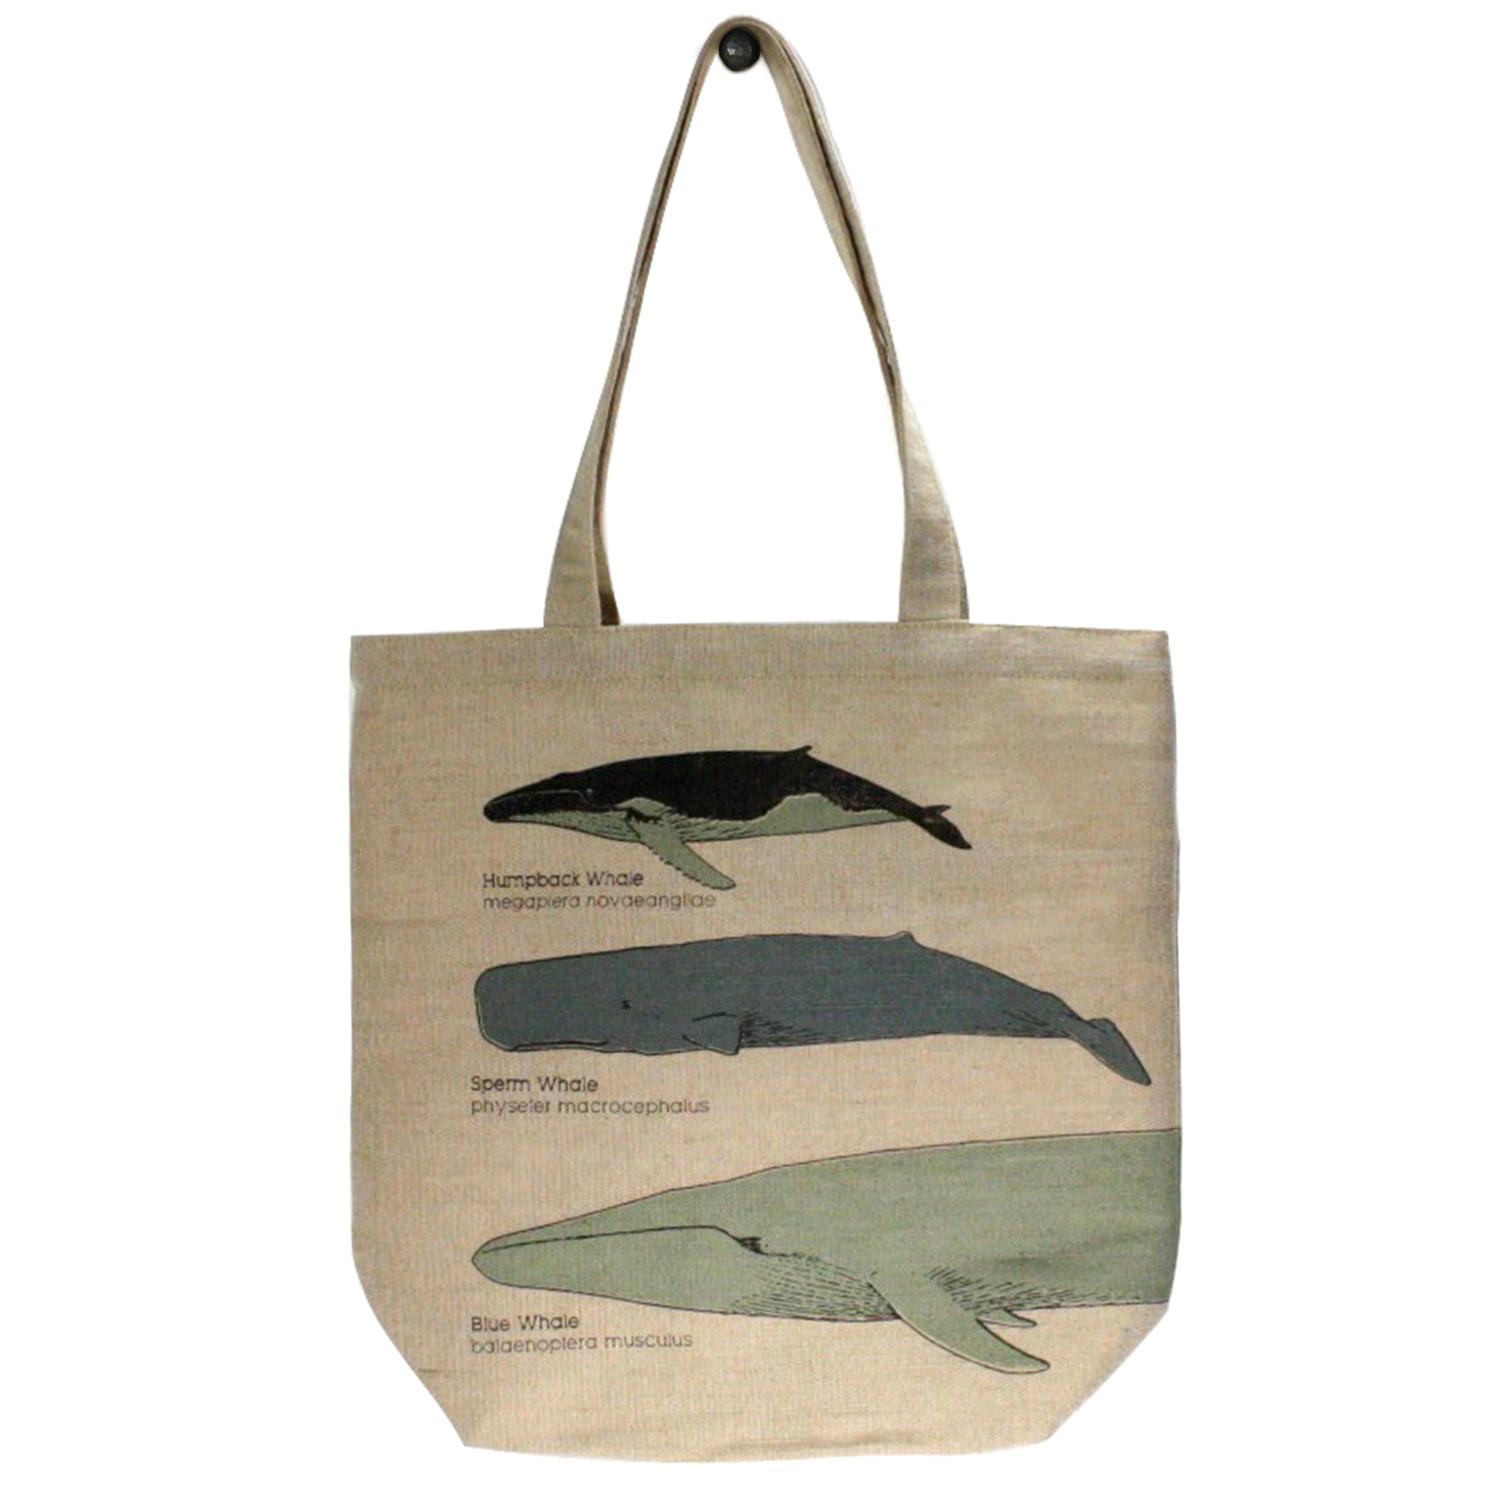 9913-197 - Juco Tote Bag - Whale Chart by HomArt